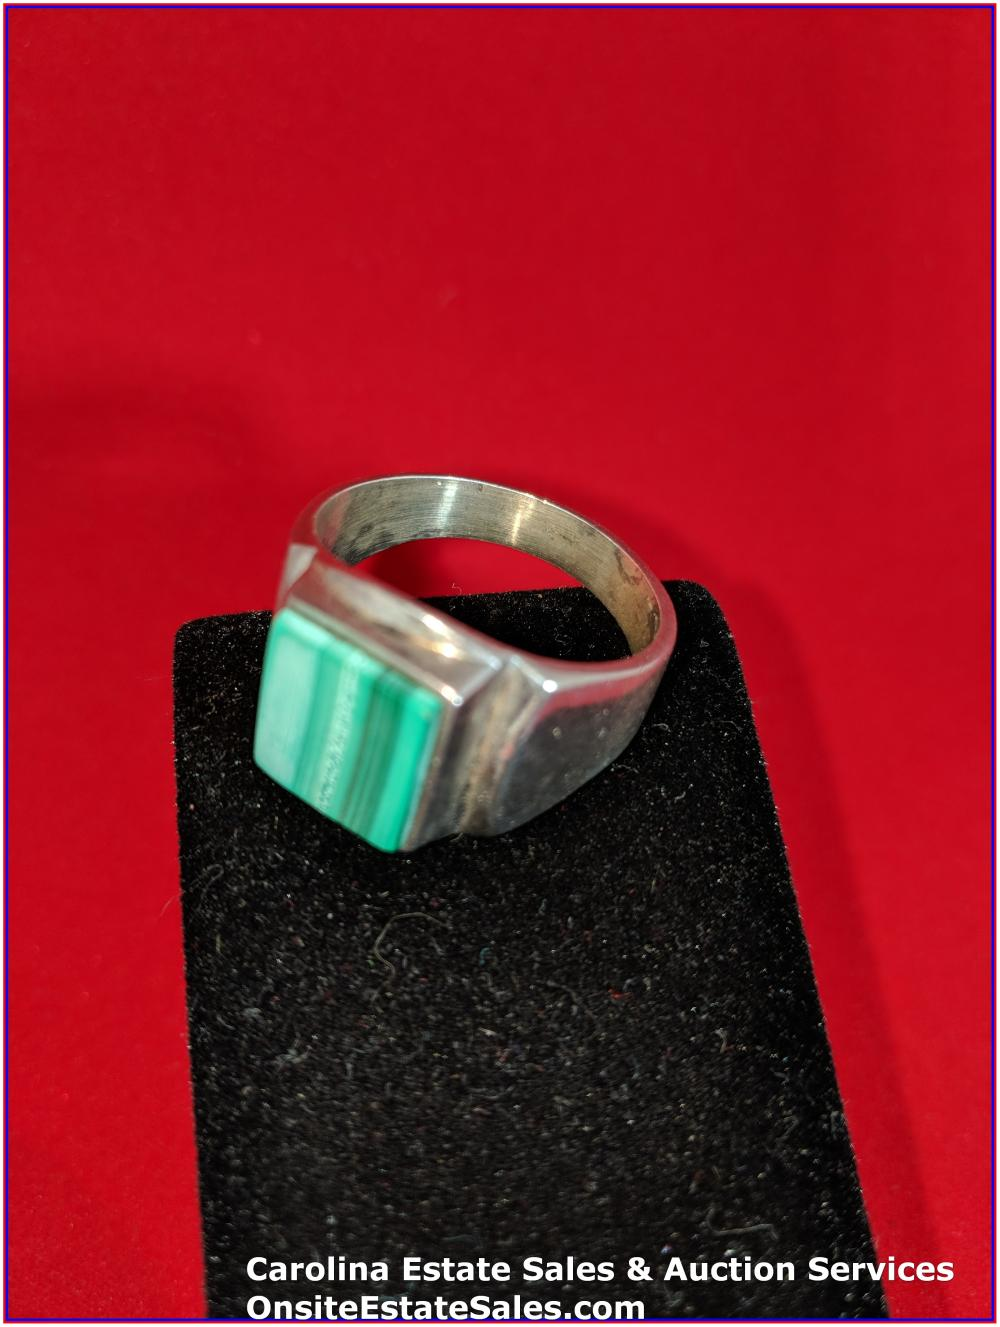 925 Gem Ring Sterling 13 Grams Total Weight Includes Stone